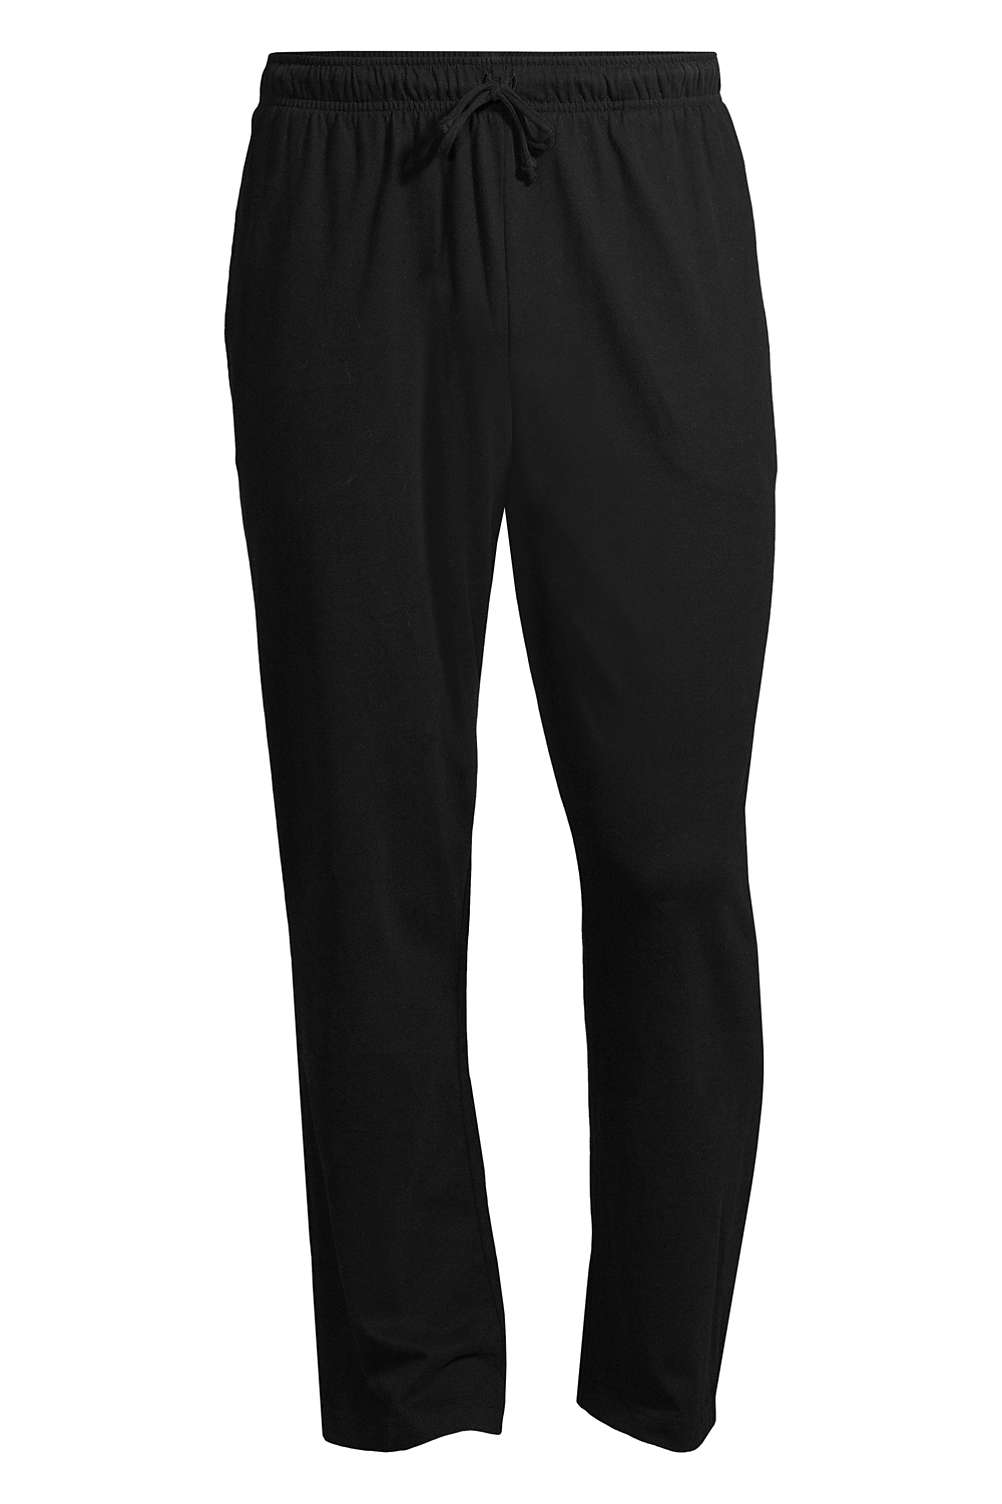 9bfb85e3b Men's Jersey Knit Sleep Pants from Lands' End